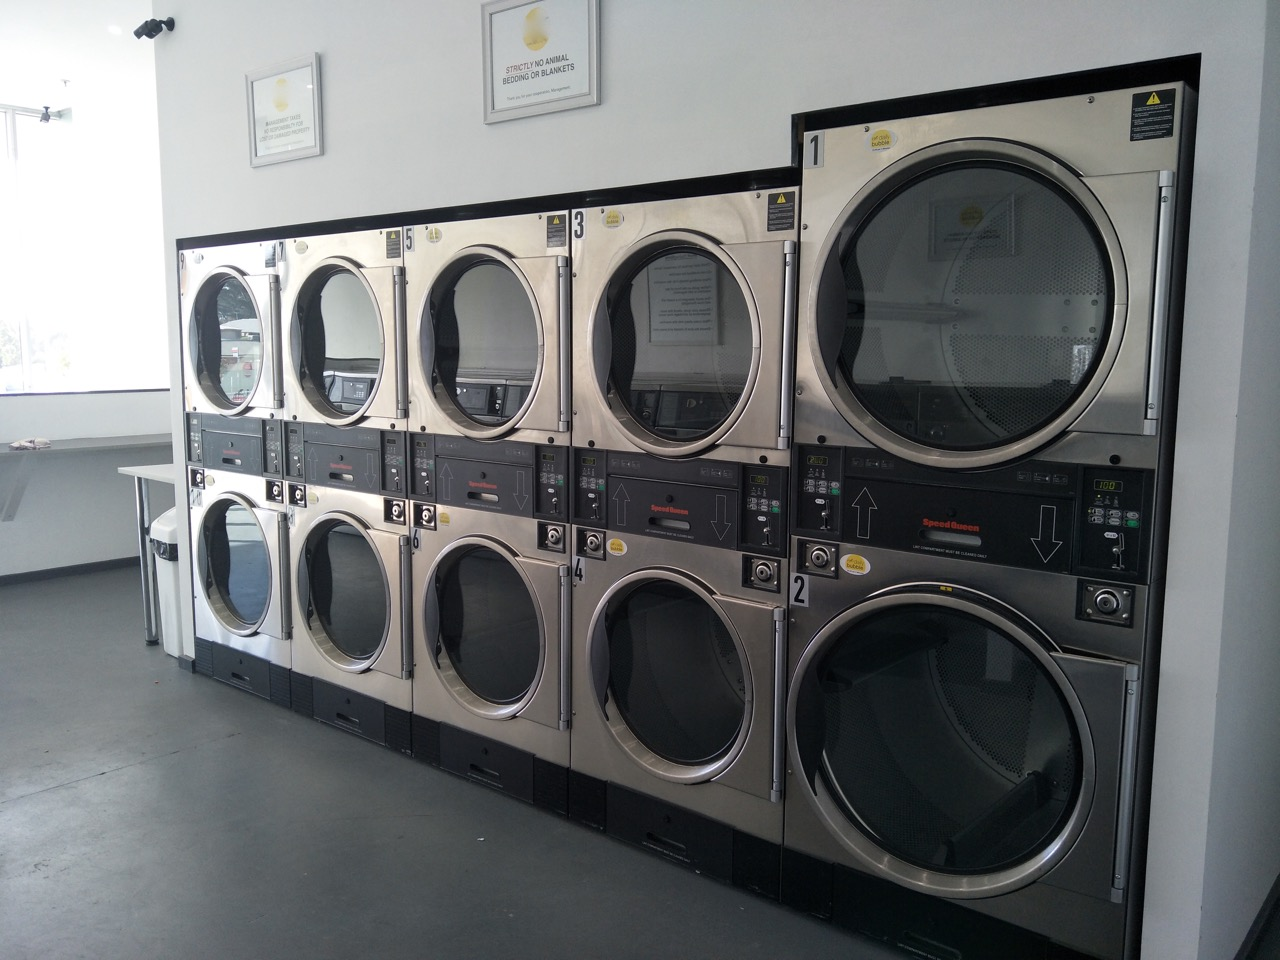 Coin Laundry Business for sale, near new equipment, huge growth potential